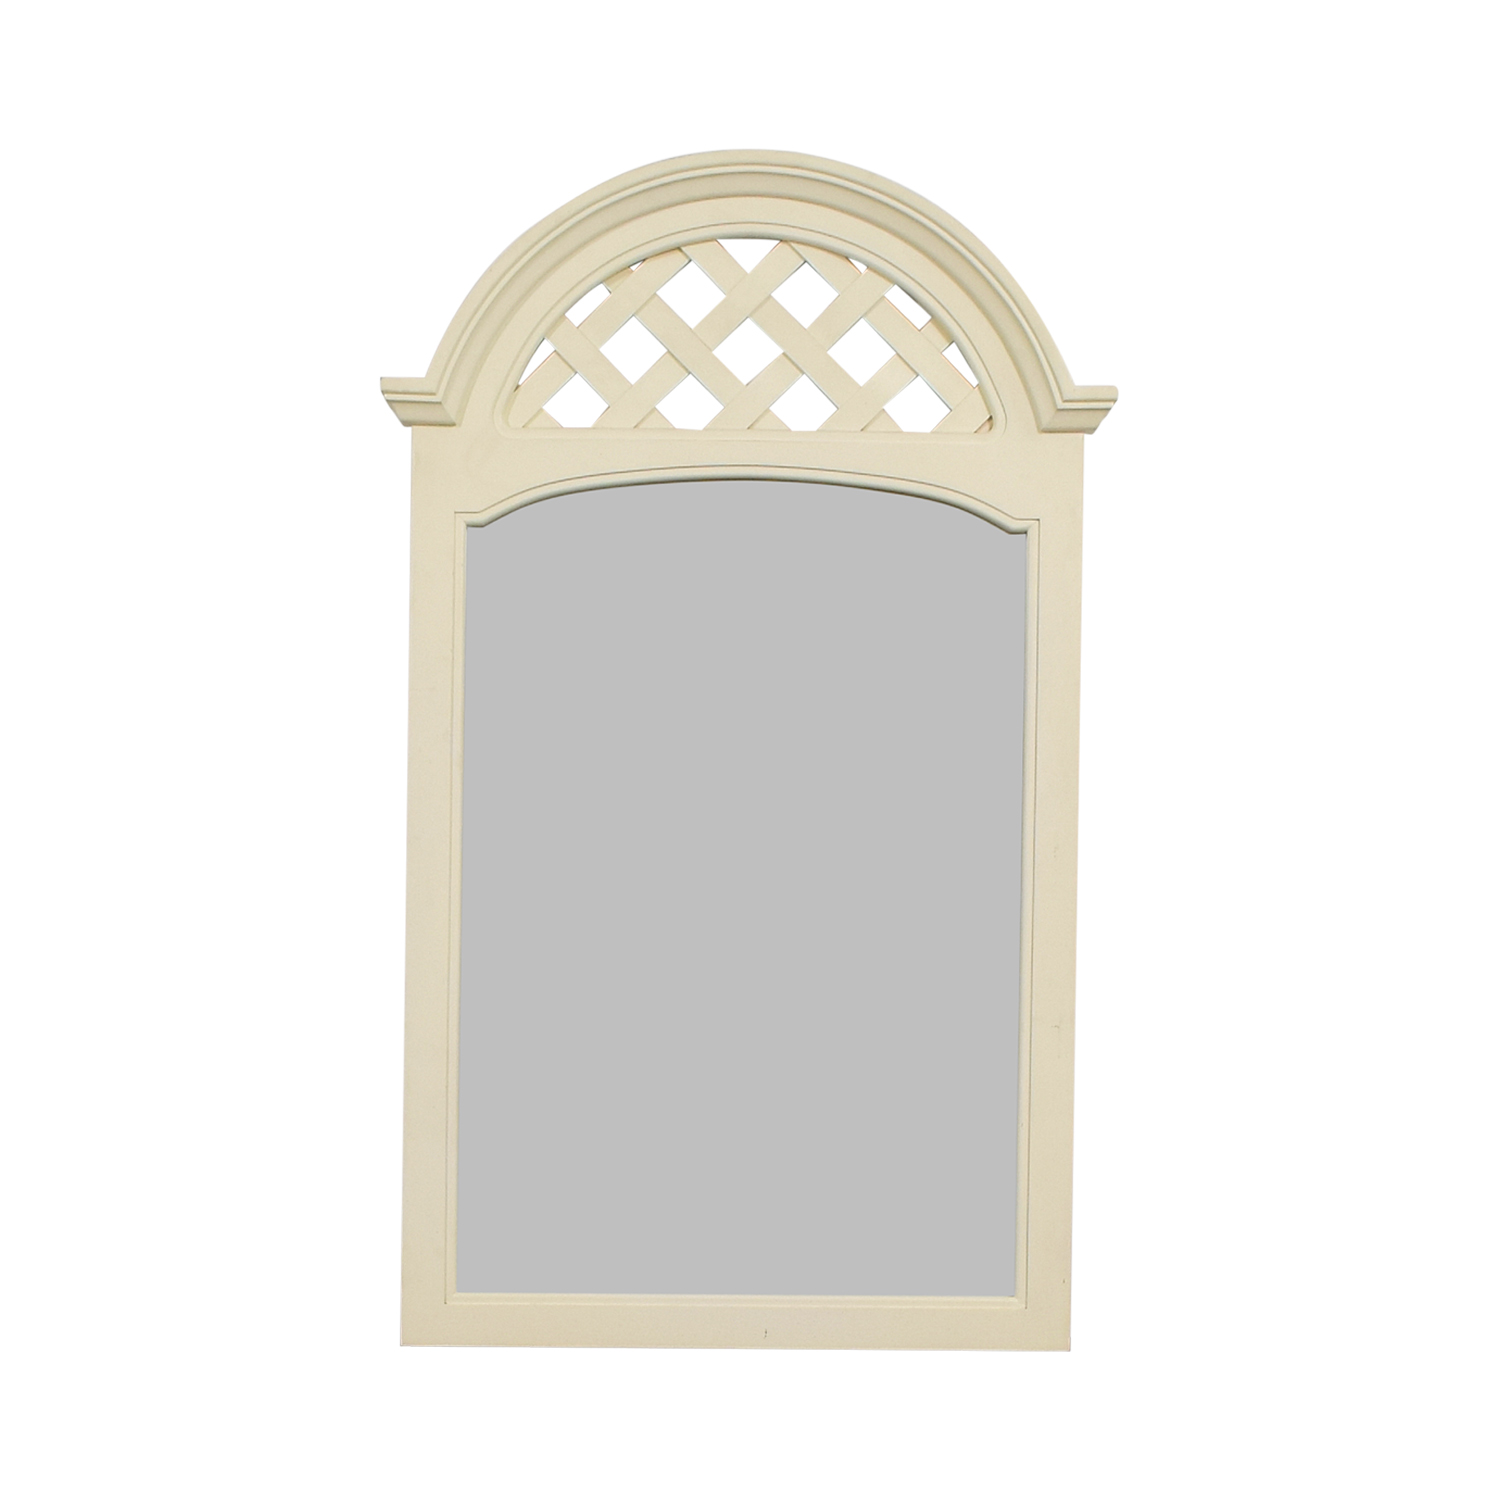 buy Stanley Furniture Stanley Furniture White Mirror online